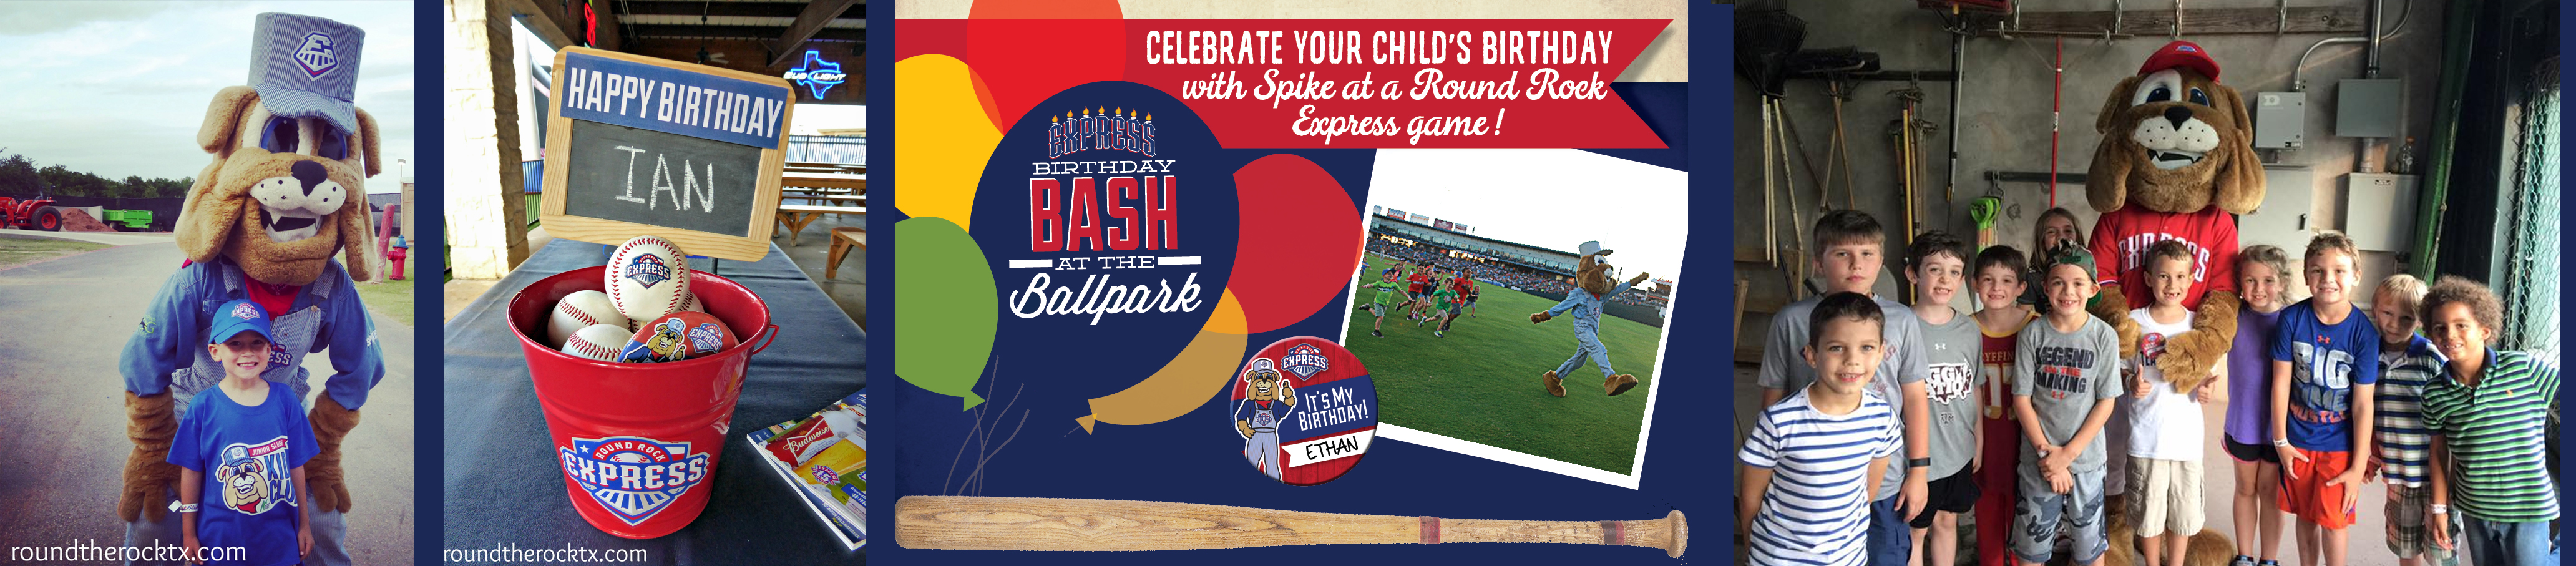 Round the Rock Birthday Party Directory - Round Rock Express